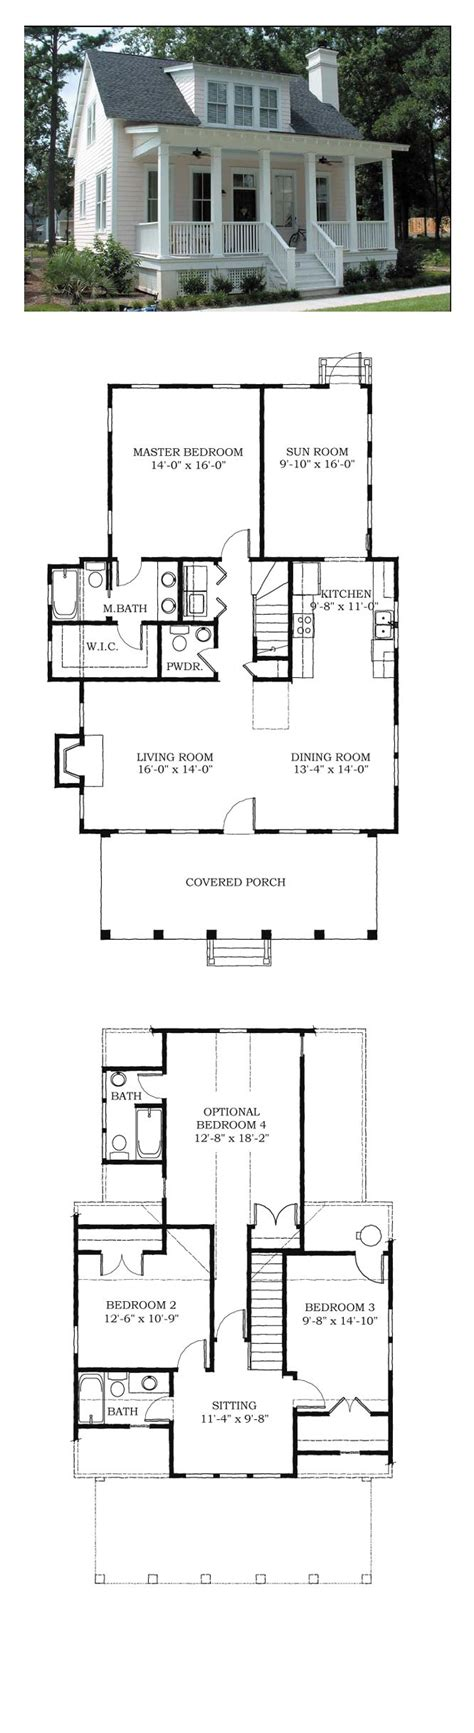 Photo Of House Plans For Families Ideas by Tiny House Plans For Family Of 6 Home